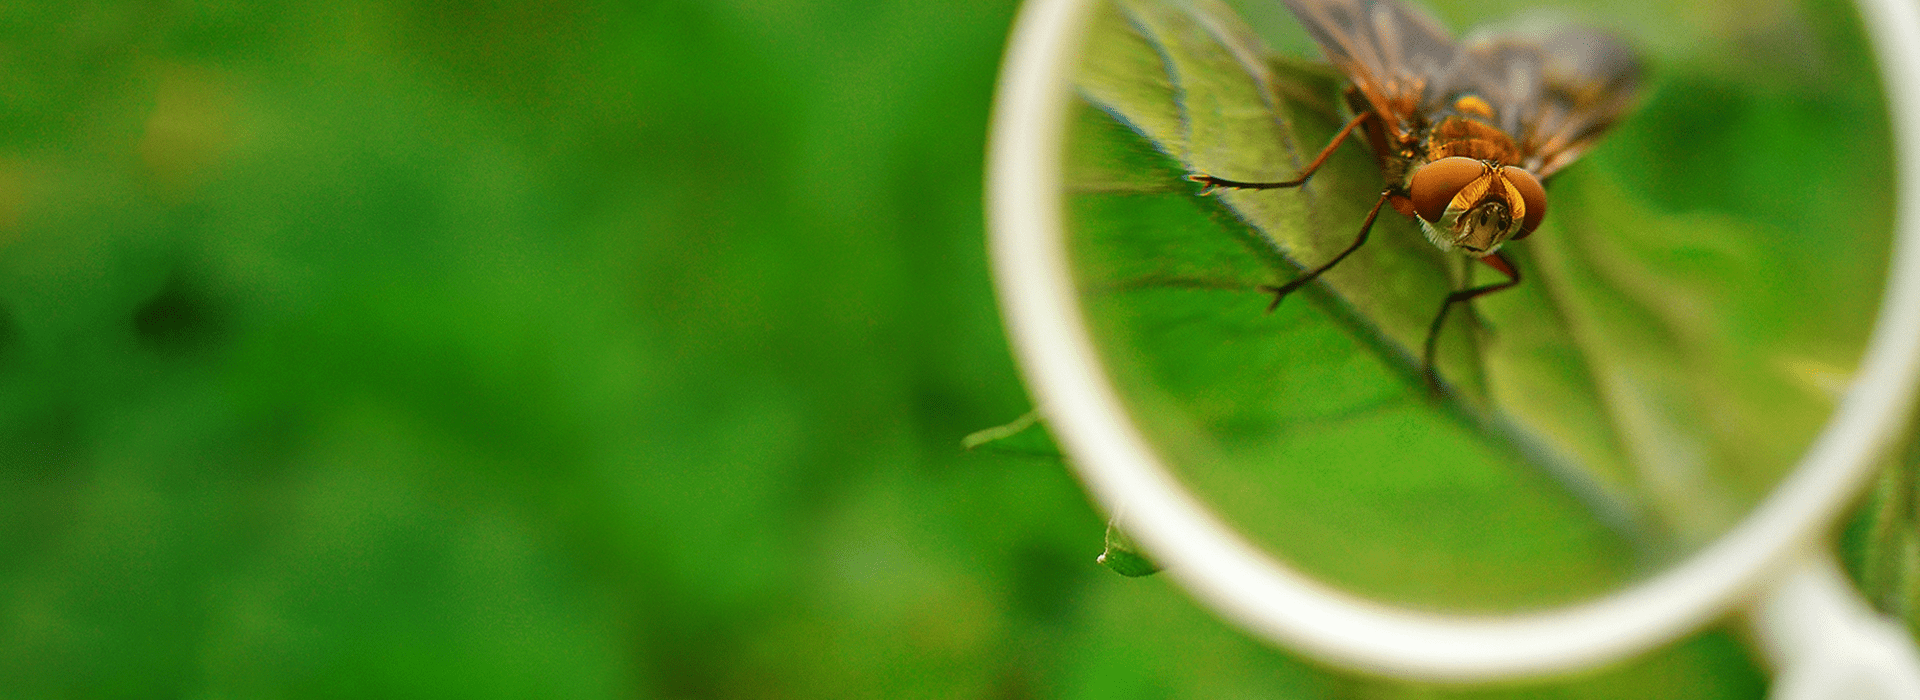 insect under a magnifying glass in a residential yard